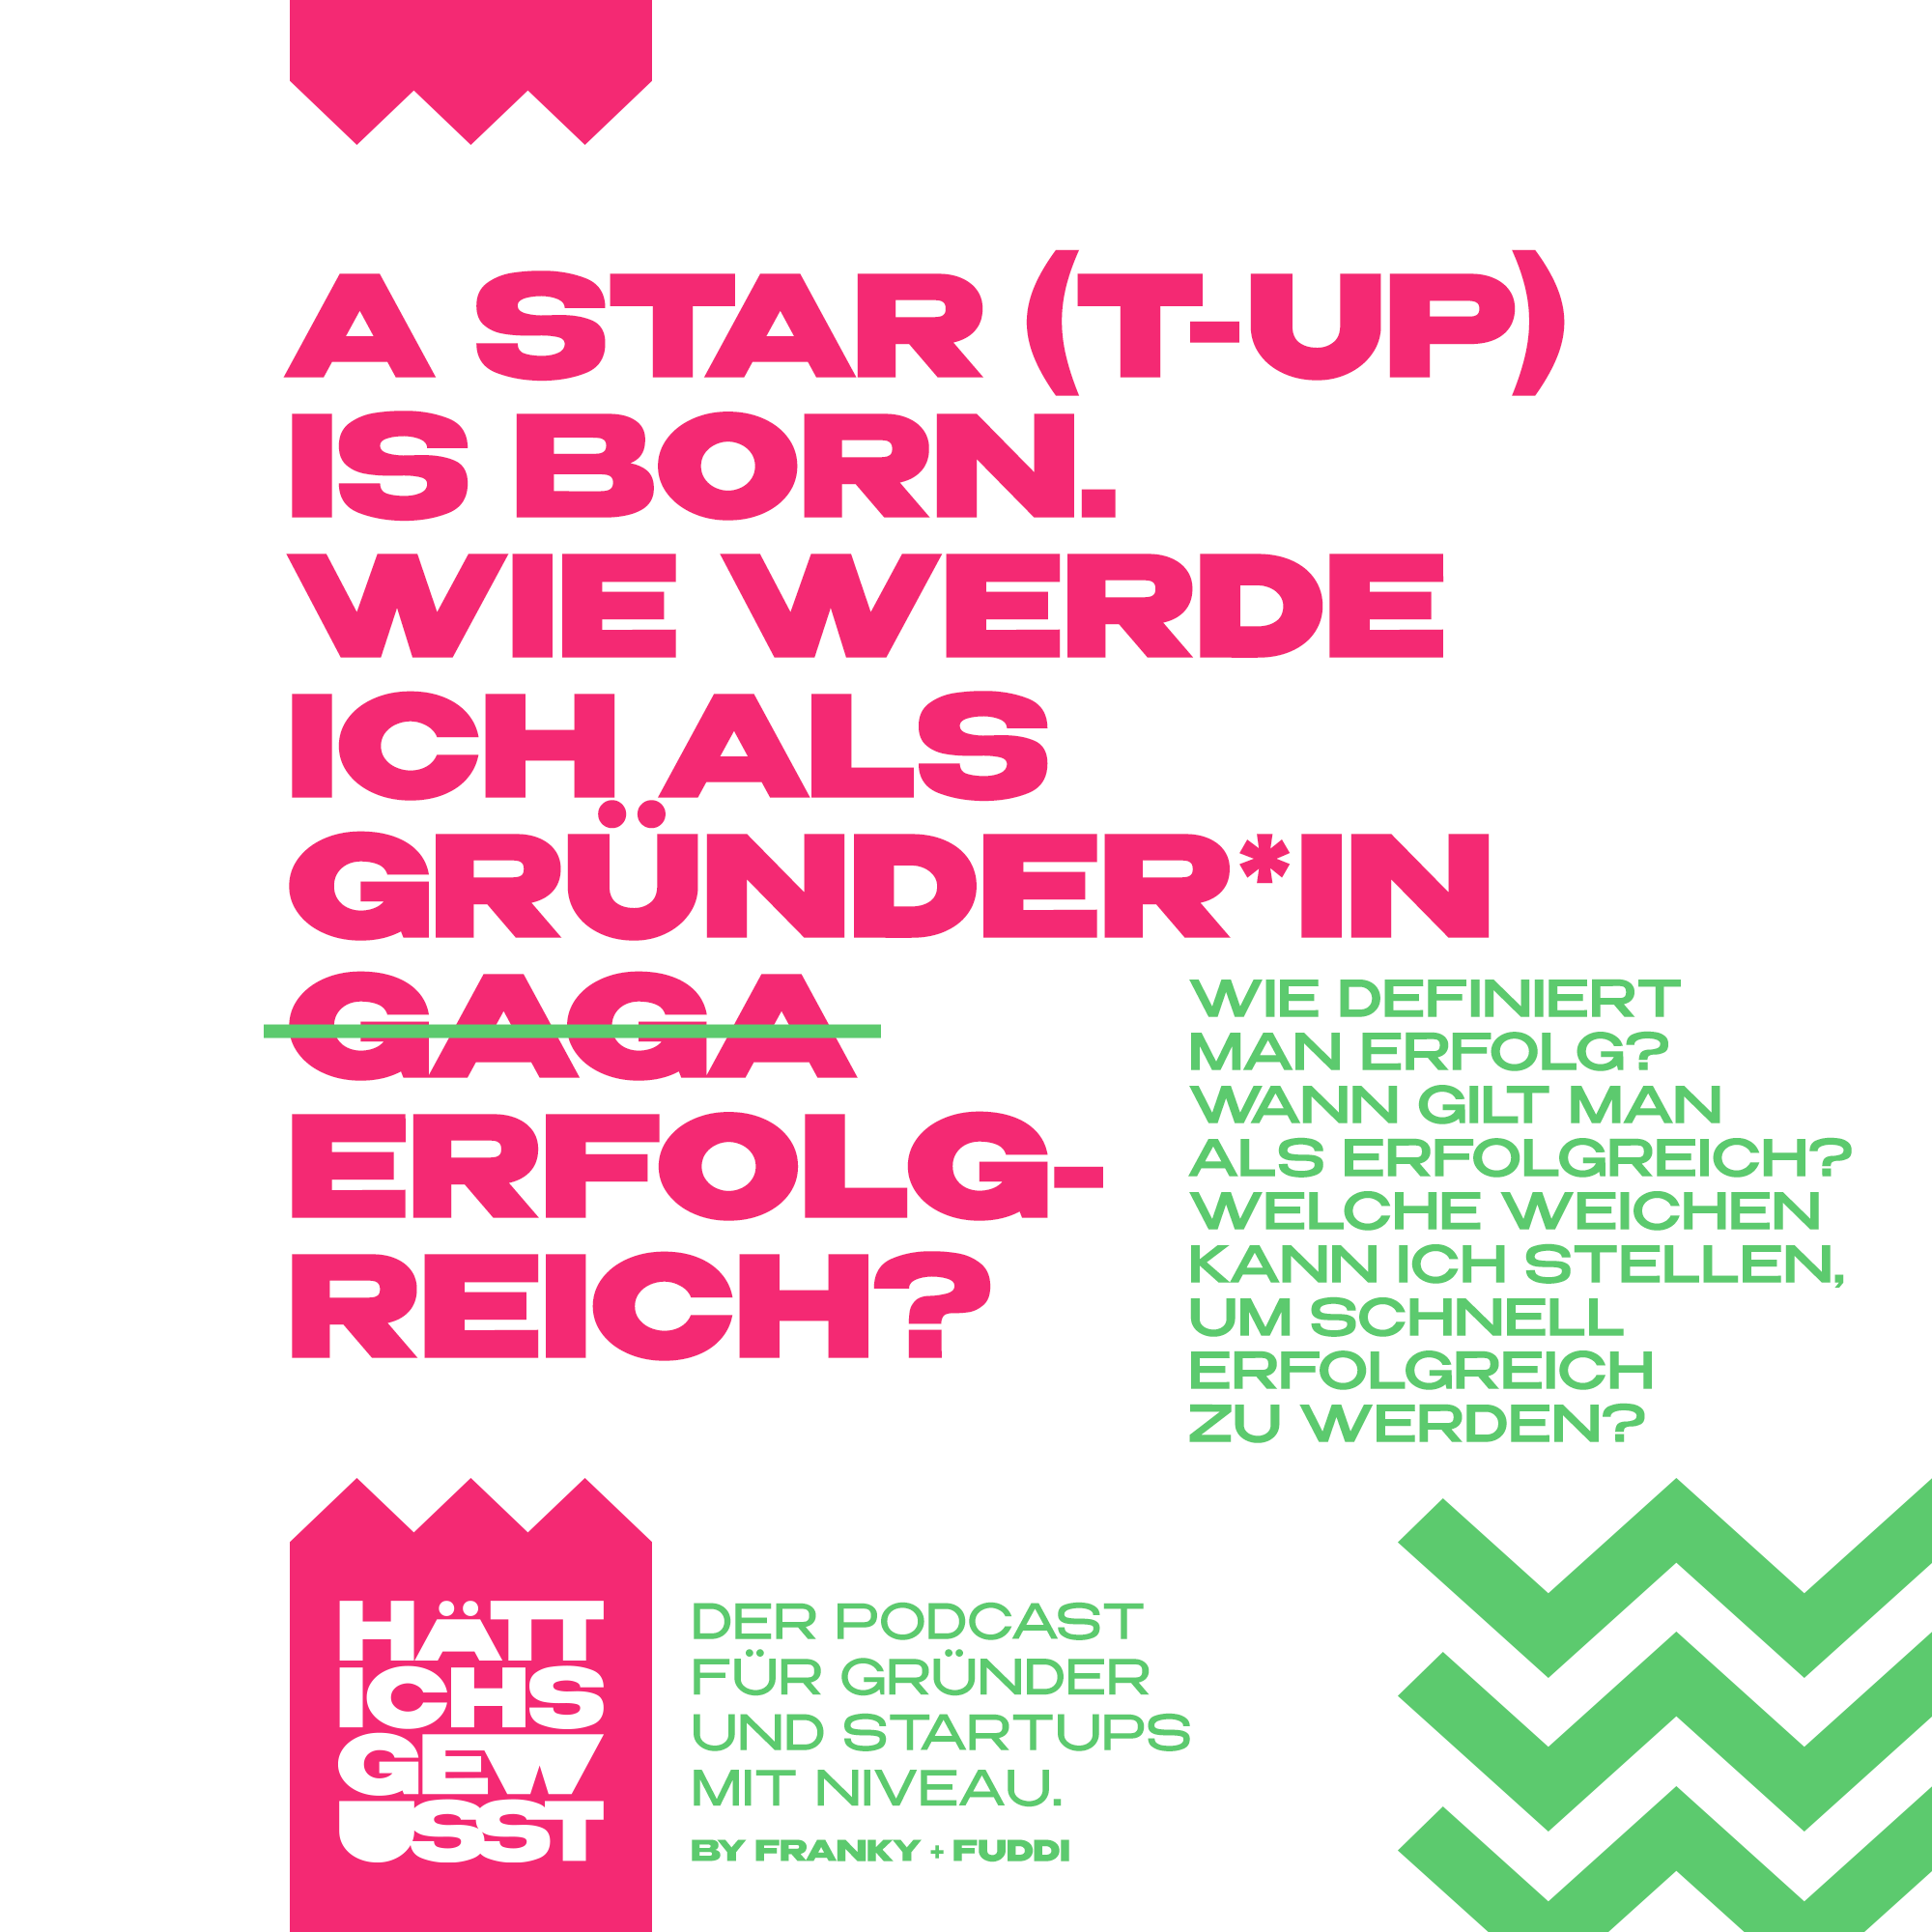 Folge 7 – A Star(tup) is born